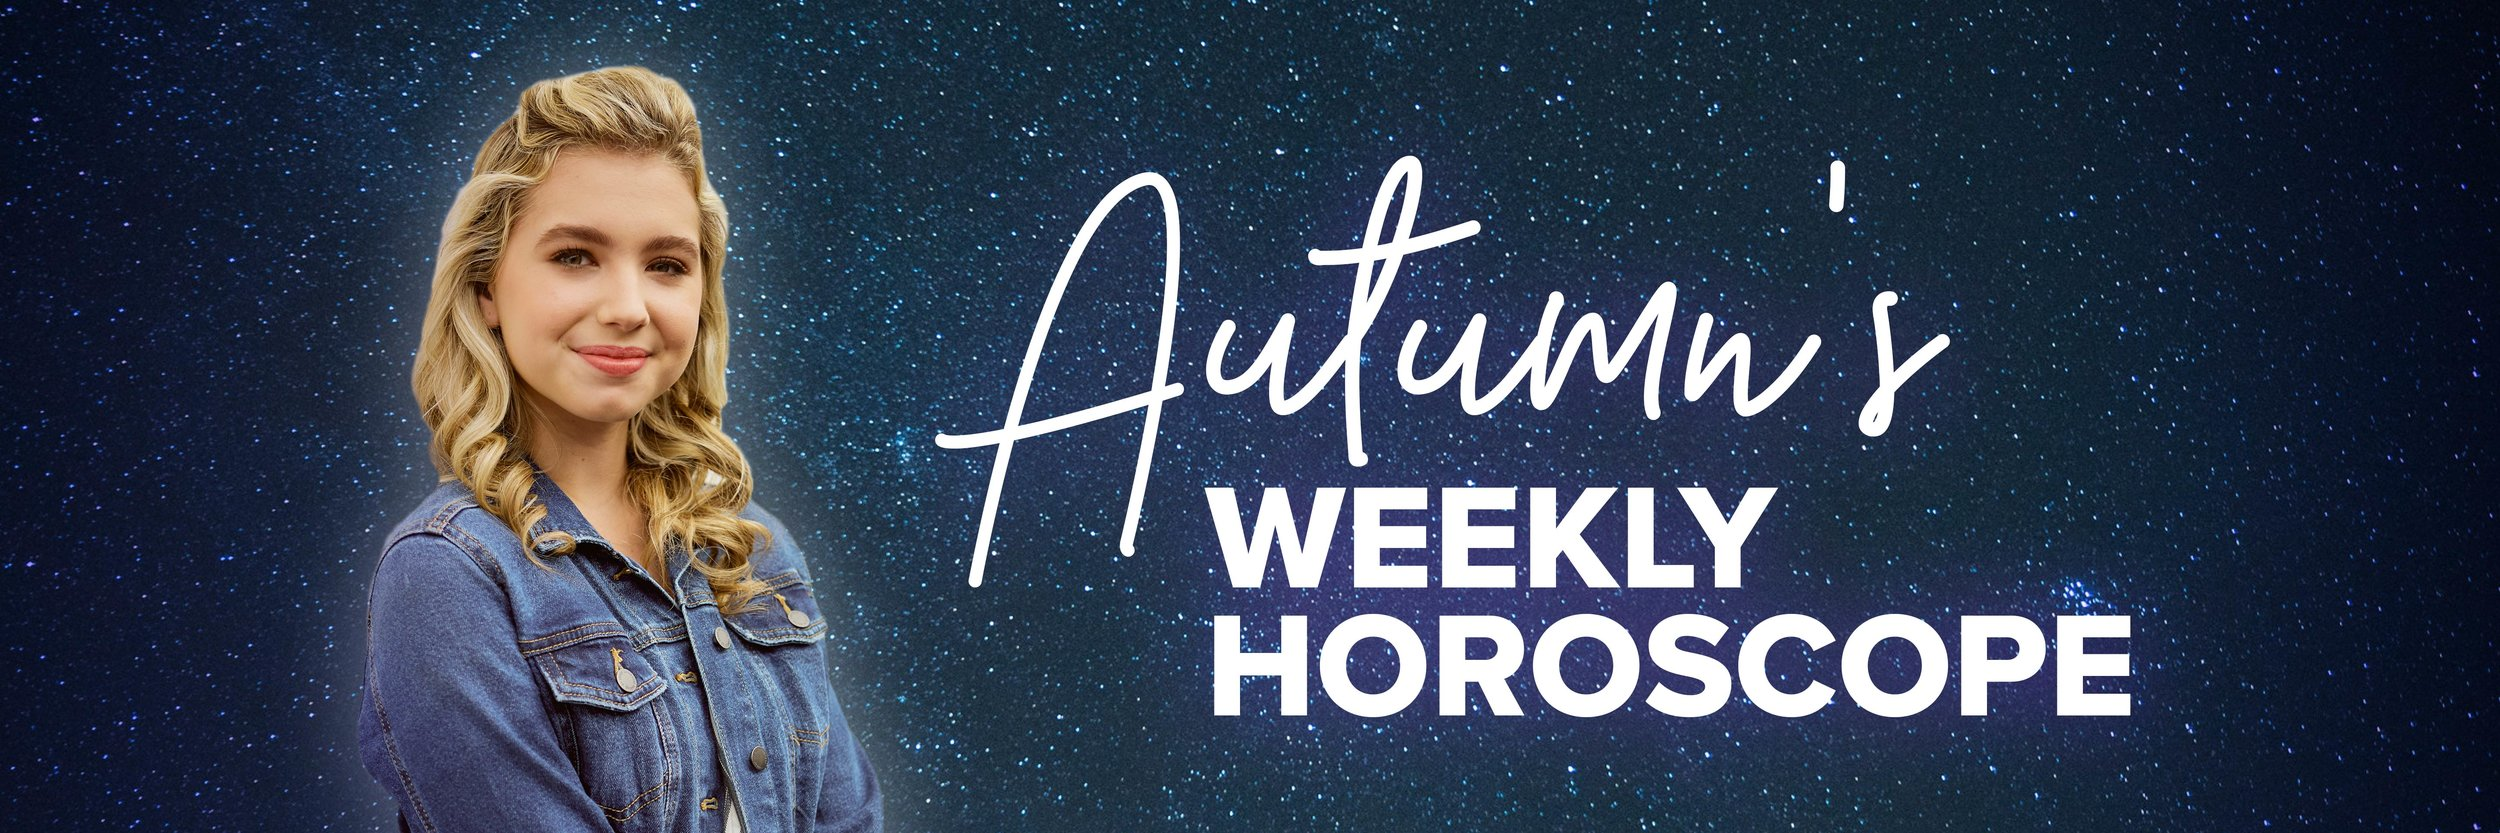 Autumn's-Weekly-Horoscope_NEW.jpg